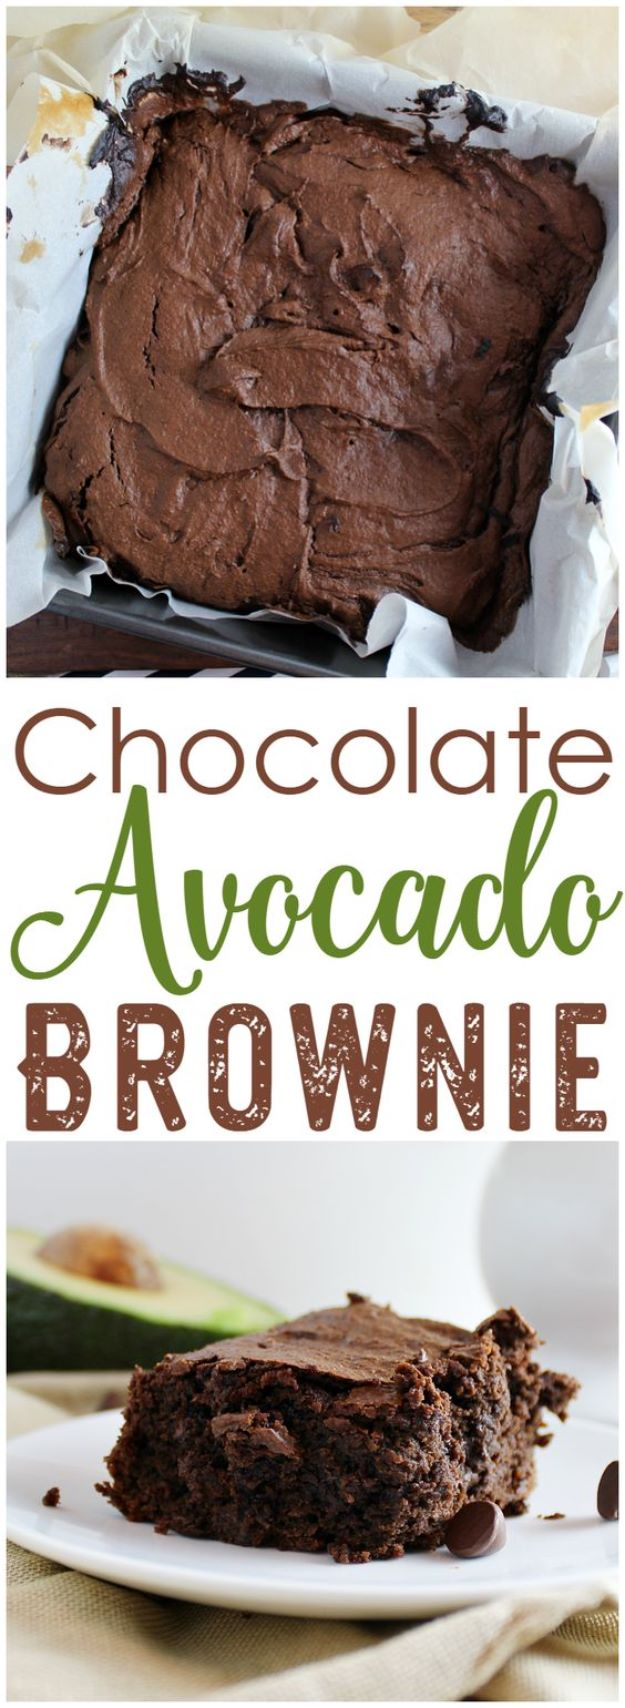 Avocado Recipes - Chocolate Avocado Brownies - Quick Avocado Toast, Eggs, Keto Guacamole, Dips, Salads, Healthy Lunches, Breakfast, Dessert and Dinners - Party Foods, Soups, Low Carb Salad Dressings and Smoothie #avocado #recipes